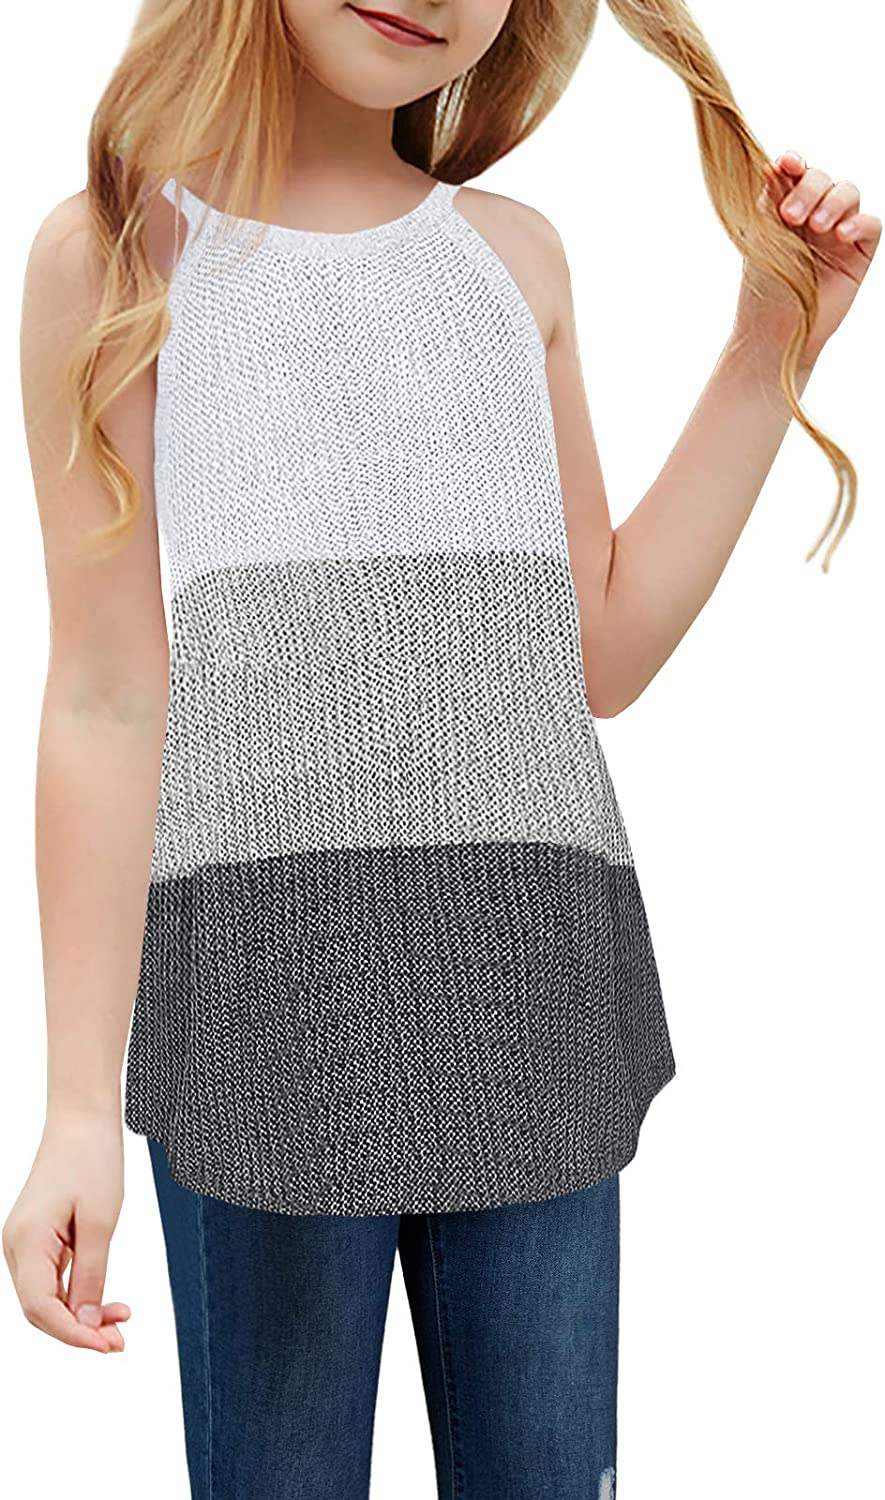 Girl's Sleeveless Knit Ranking TOP5 Tops Color Selling Block Loose Halter S Cami Neck